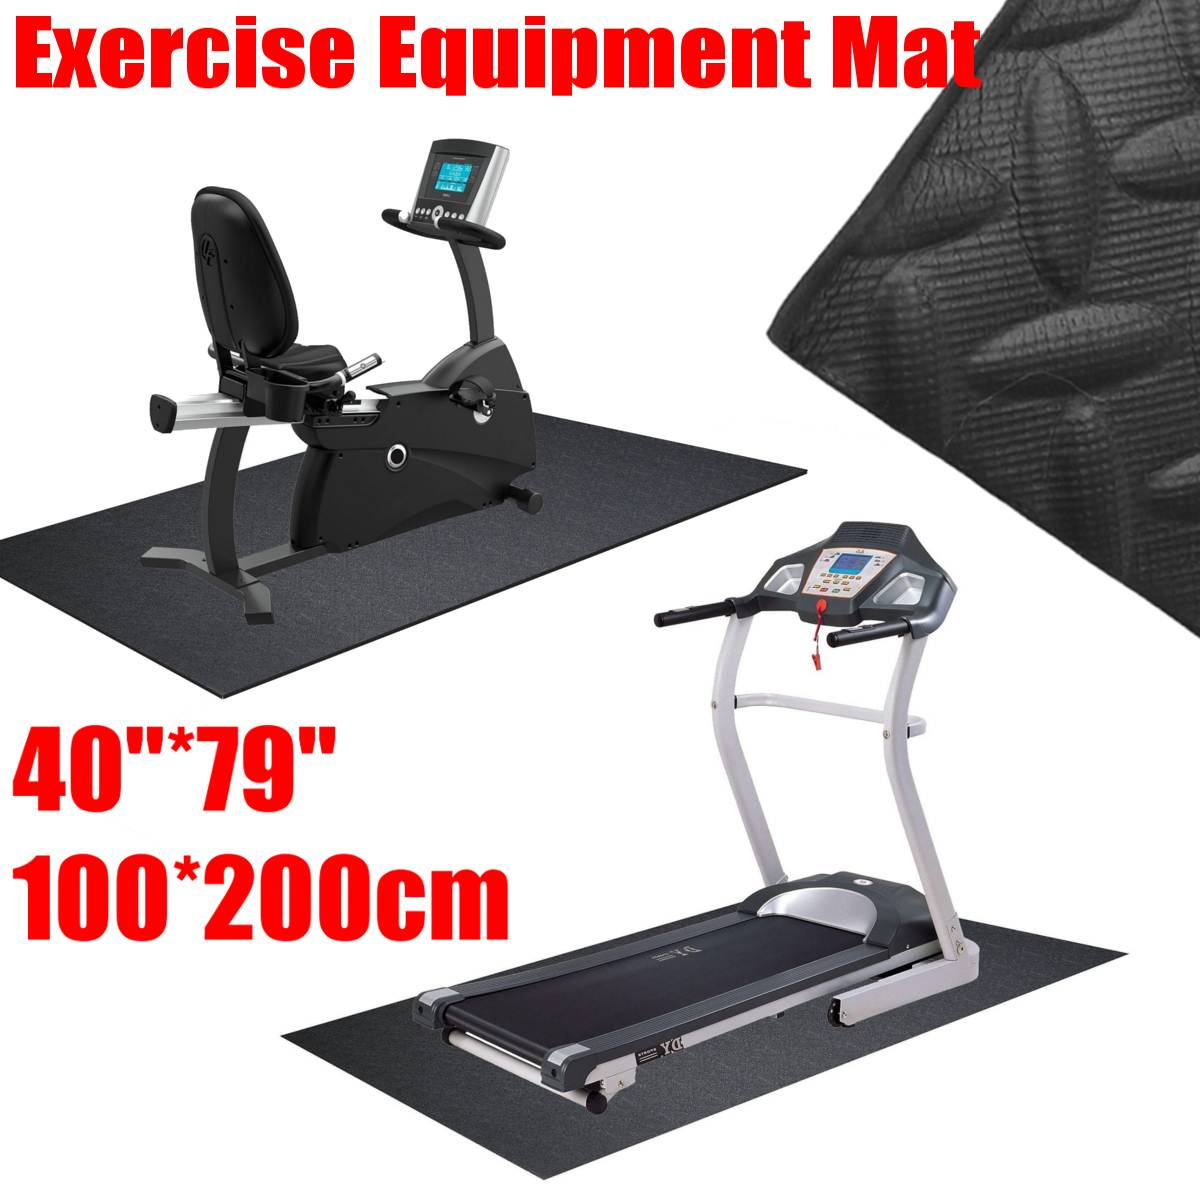 200x100cm No Slip Exercise Mat Gym Fitness Equipment For Treadmill Bike Protect Floor Mat Running Machine Shock Absorbing Pad